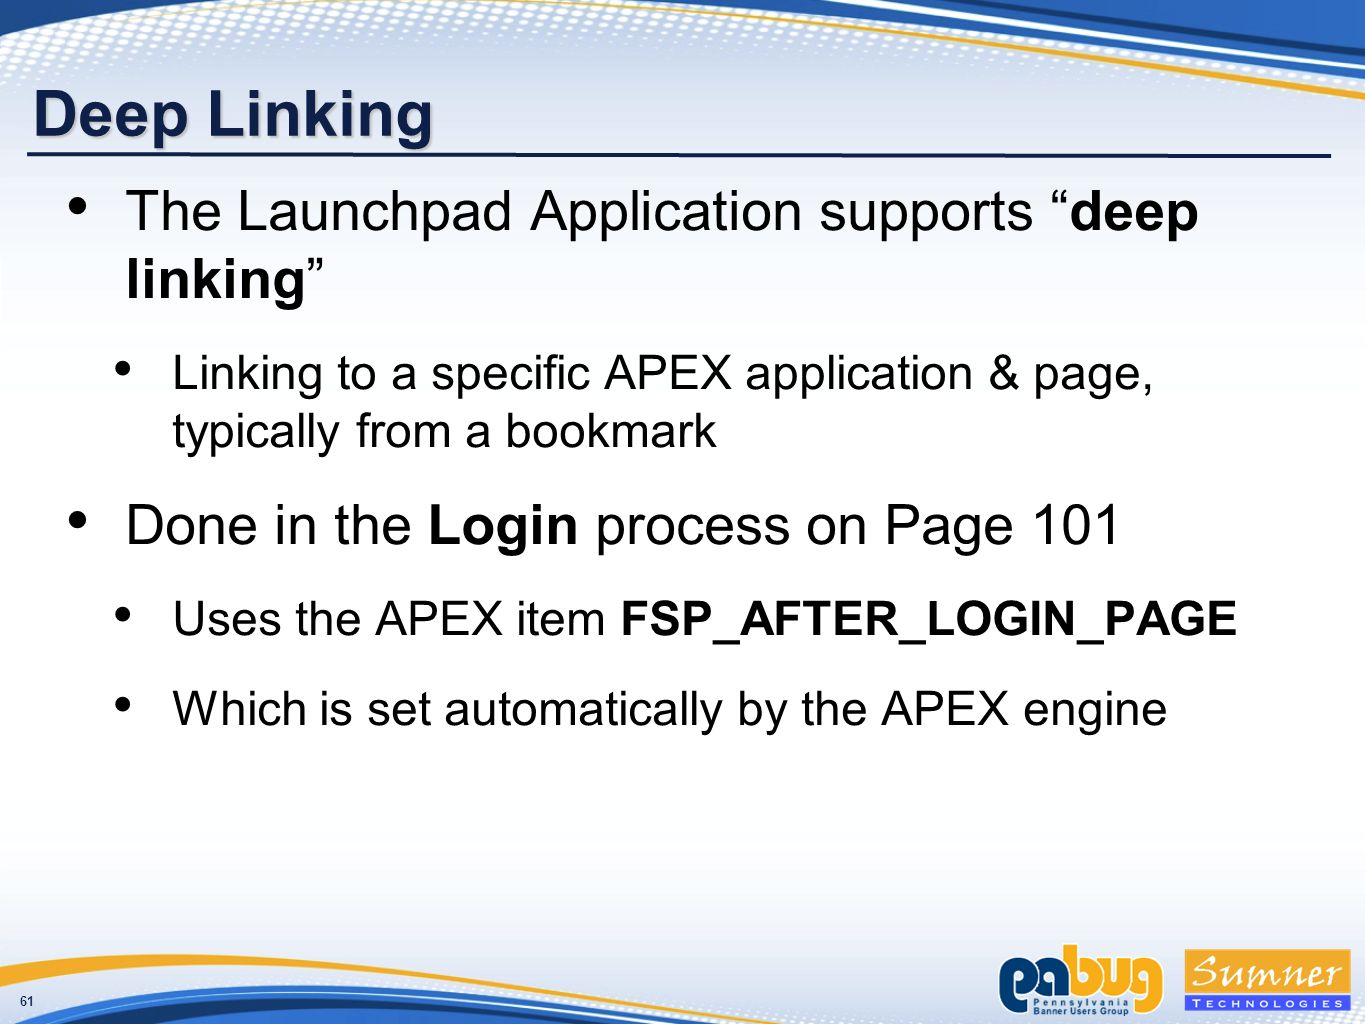 61 Deep Linking The Launchpad Application supports deep linking Linking to a specific APEX application & page, typically from a bookmark Done in the Login process on Page 101 Uses the APEX item FSP_AFTER_LOGIN_PAGE Which is set automatically by the APEX engine